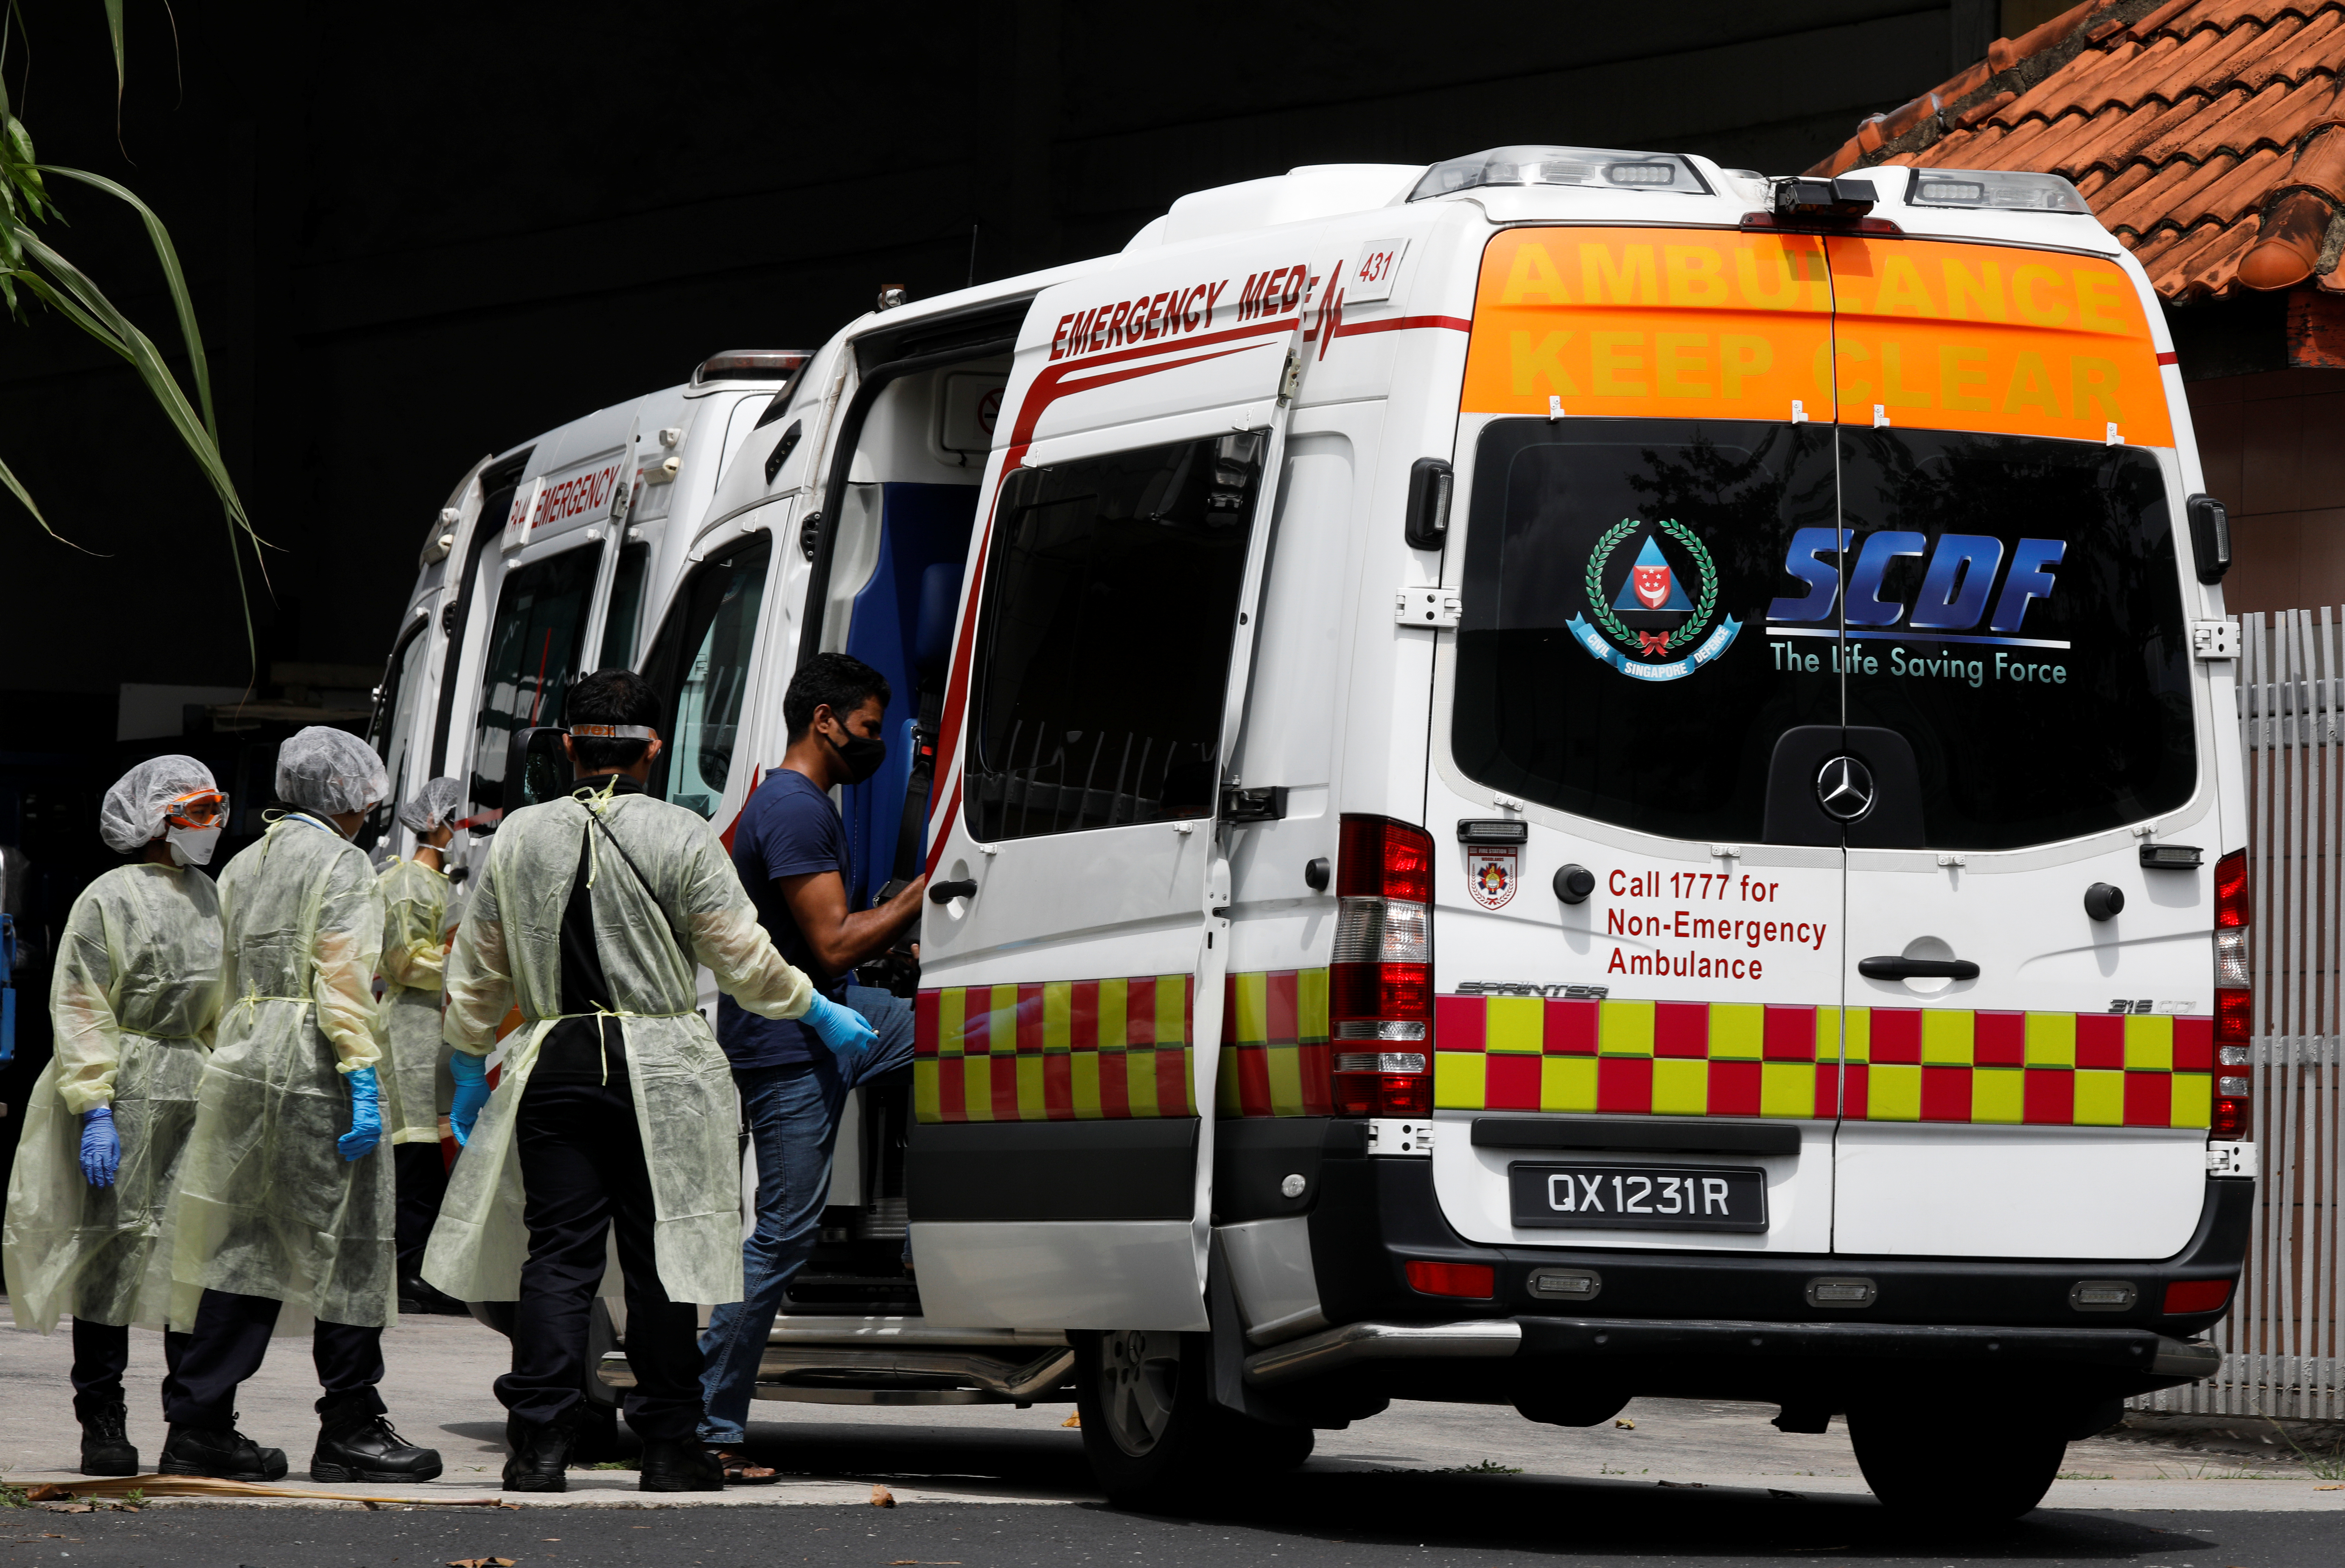 Medical personnel assist a migrant worker as he enters an ambulance at a factory-converted dormitory, amidst the coronavirus disease (COVID-19) outbreak in Singapore, April 28, 2020. REUTERS/Edgar Su